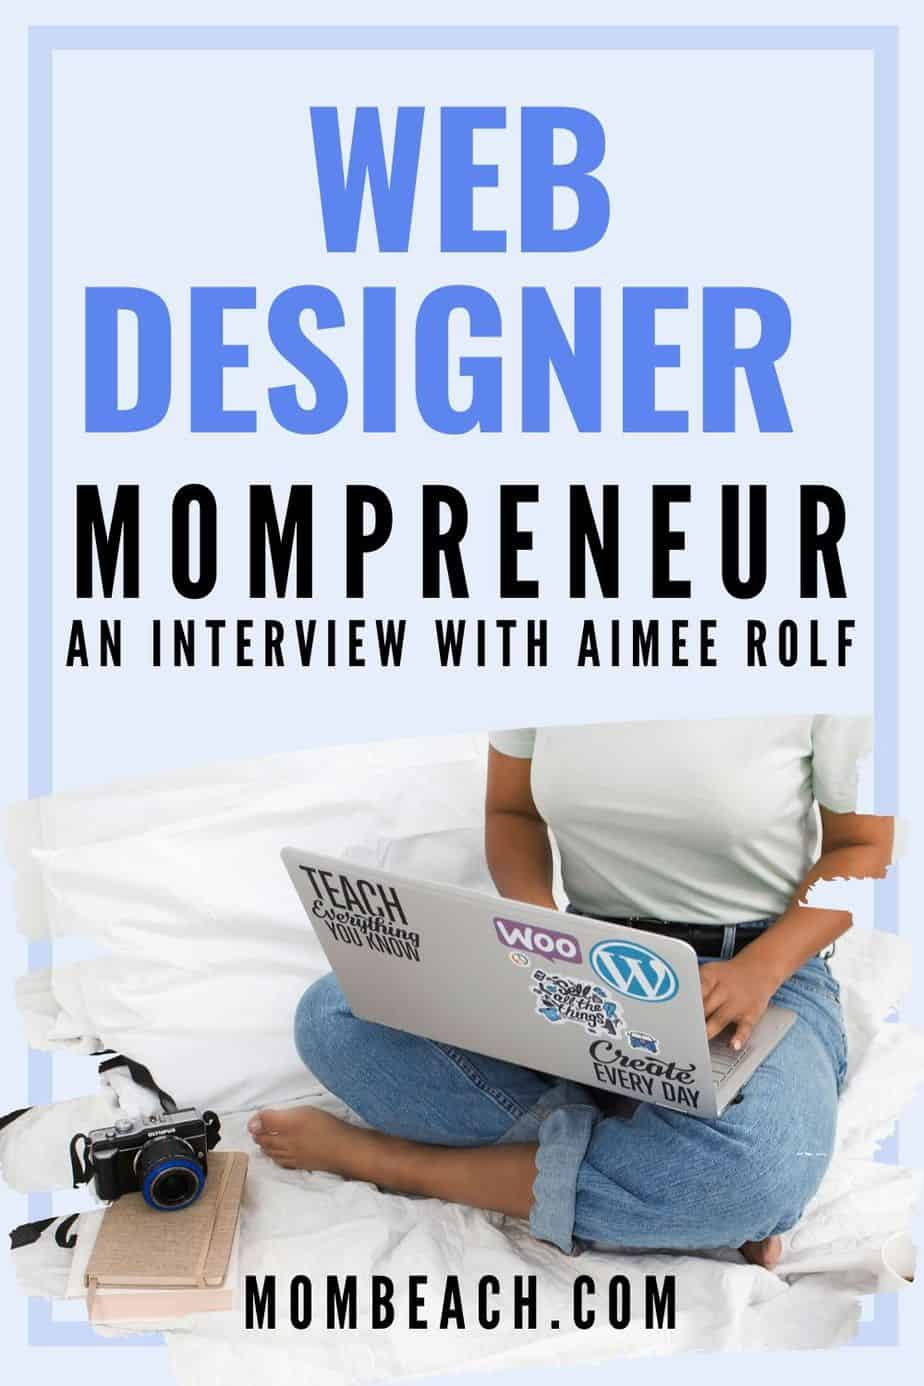 Aimee Rolf is a web designer and marketer with her own business. This inspiring mompreneur works from home and gets to stay home with her kid. If you want to work from home, consider your own web designer business. It's a great stay at home mom job for busy moms. #stayathomemomjobs #webdesignerjob #workfromhome #athomejobs #remotejobs #mompreneur #business